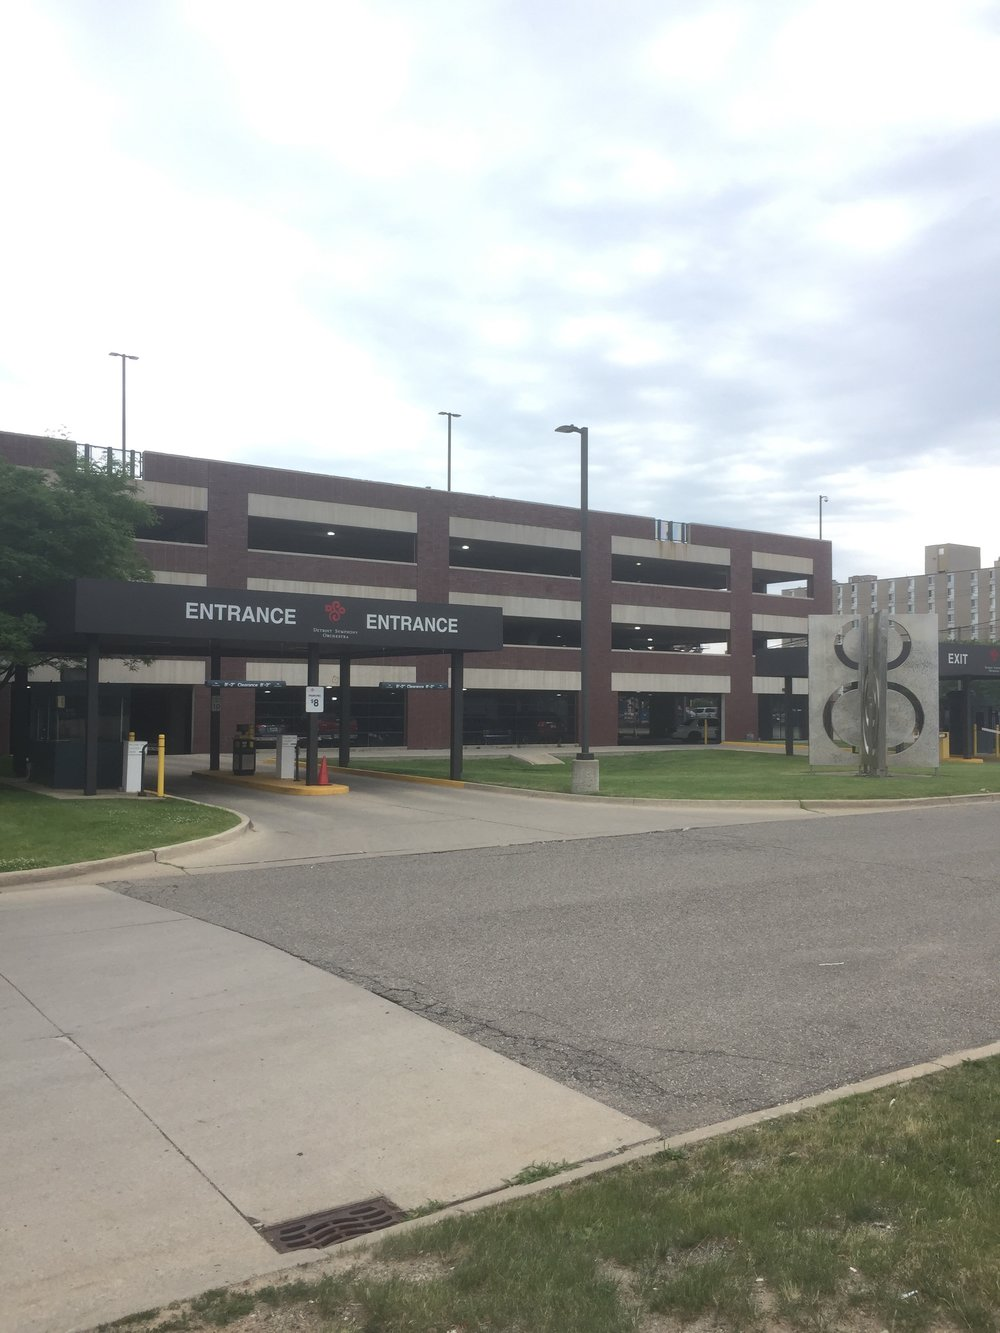 We offer validated parking at the   DSO Parking Garage on 81 Parsons St  , which is between the Woodward and Cass intersections. Make sure to bring your ticket in so we can validate it!